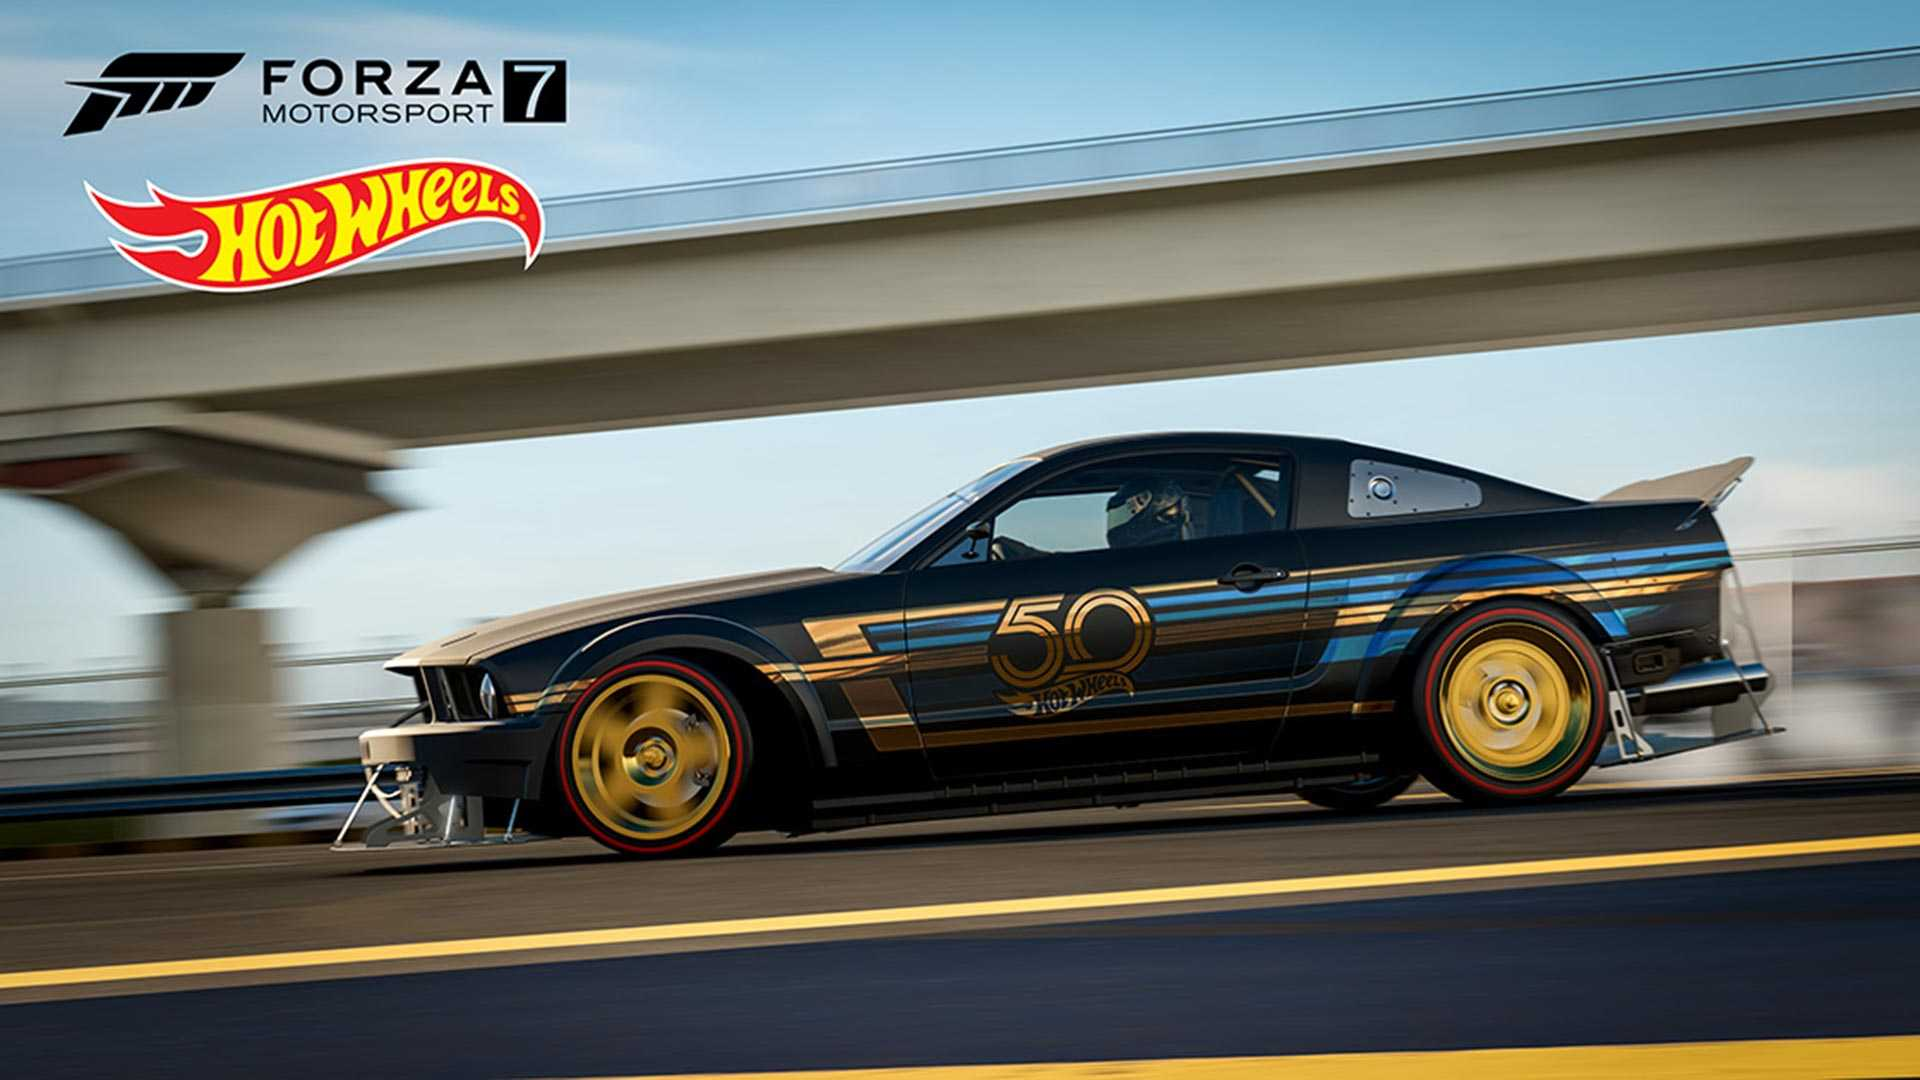 Forza Motorsport 7 Hot Wheels Pack (3)